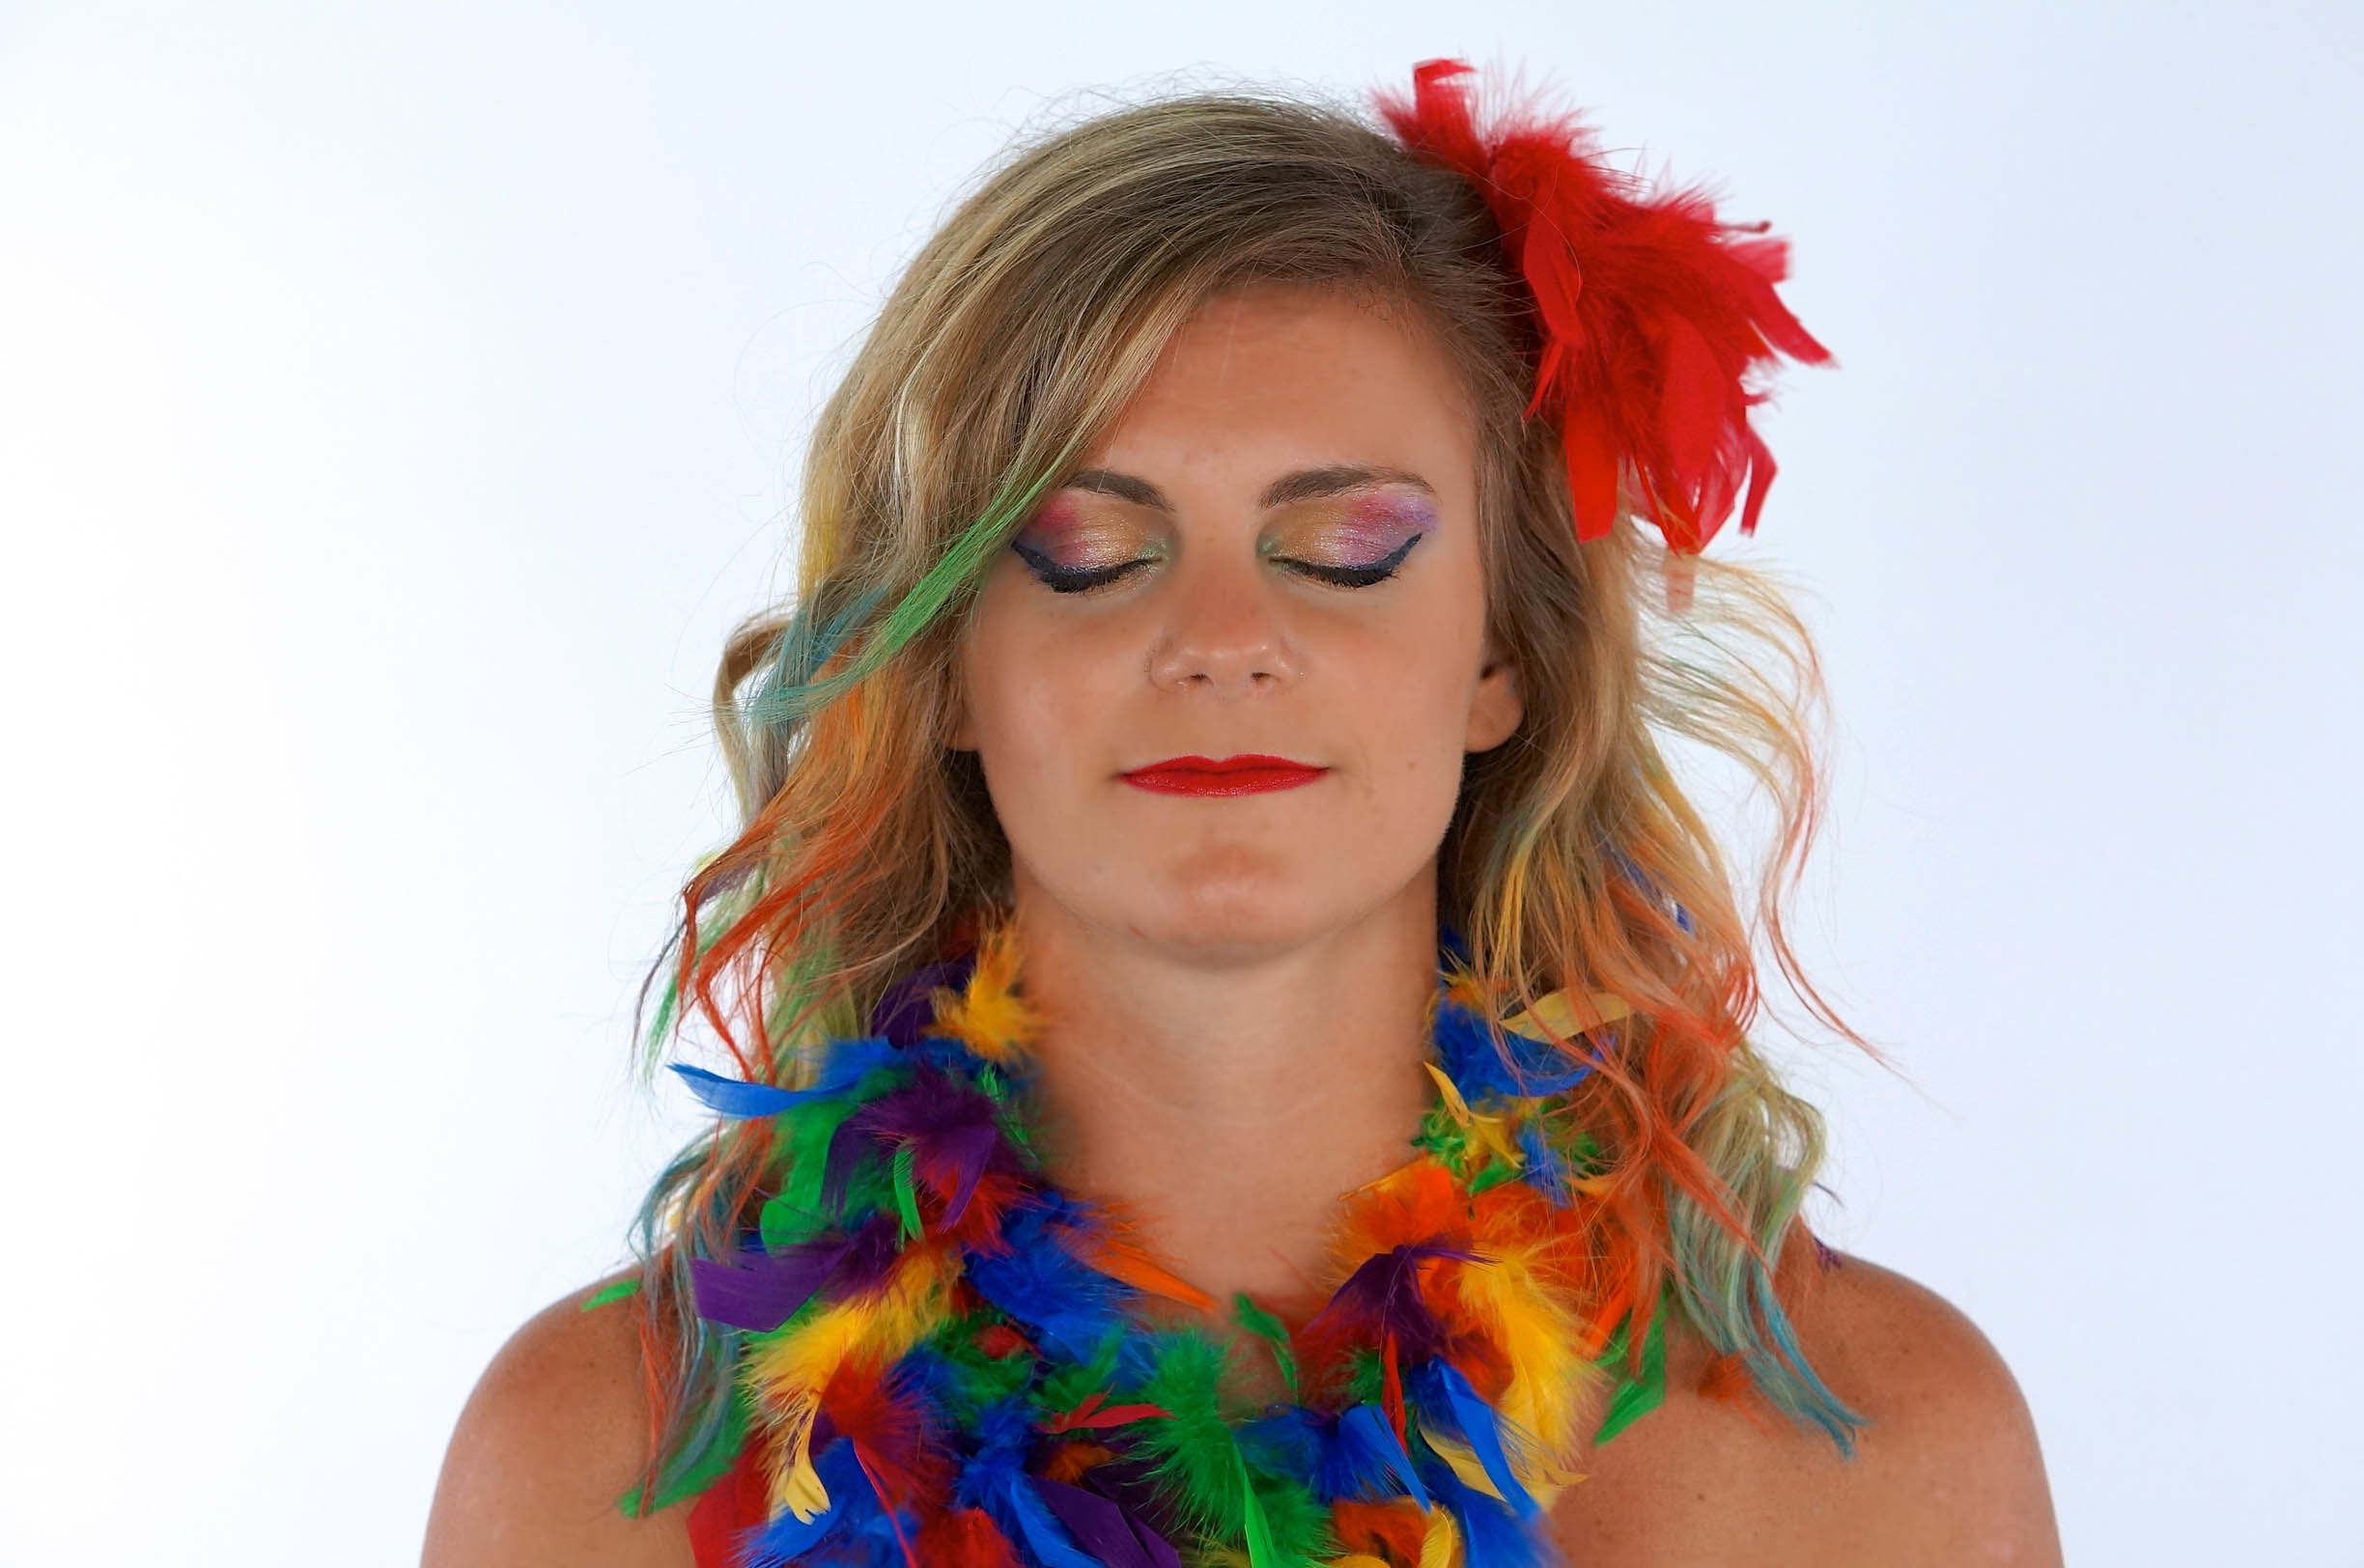 DIY Parrot Costume Makeup